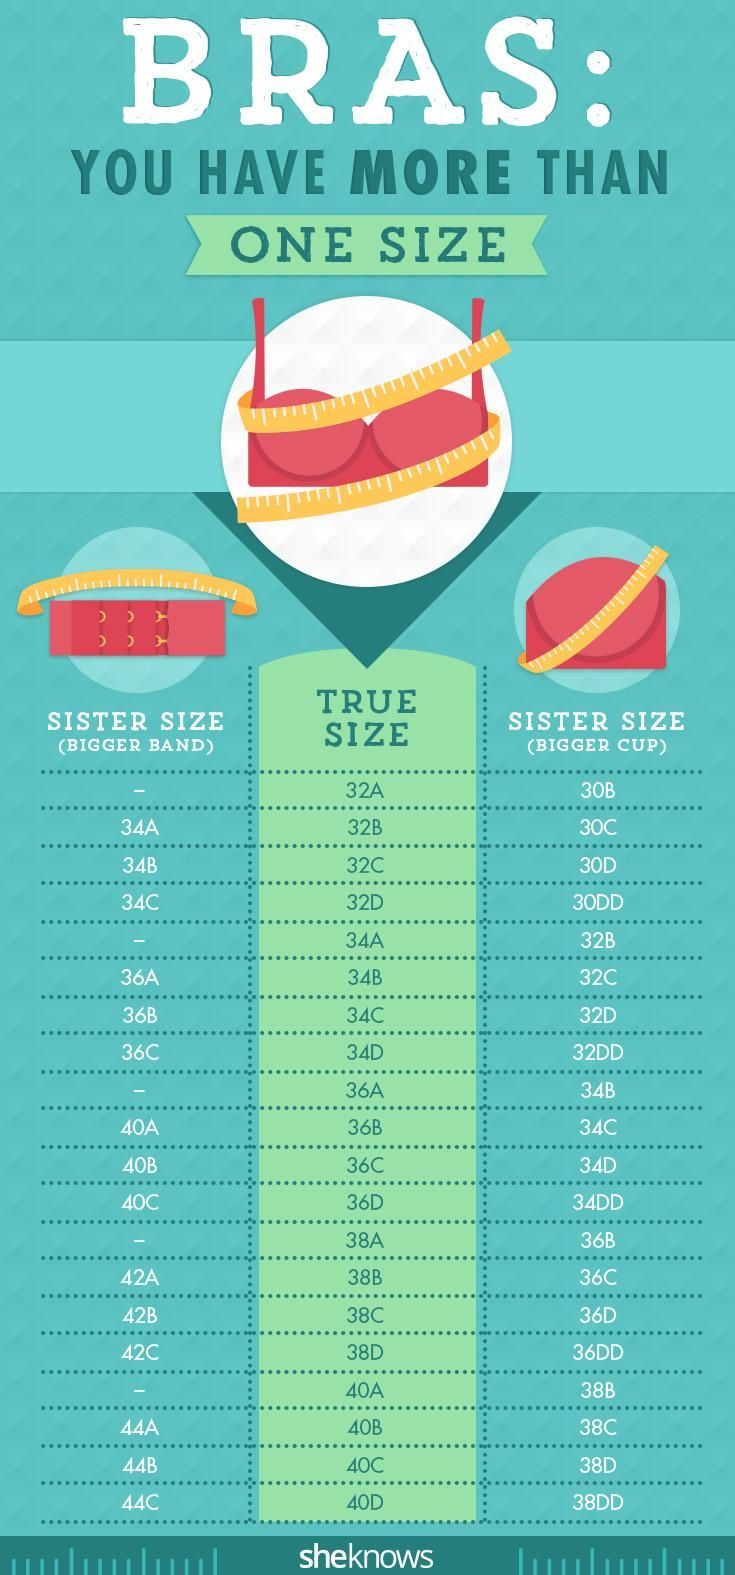 Did you know you have multiple bra sizes?